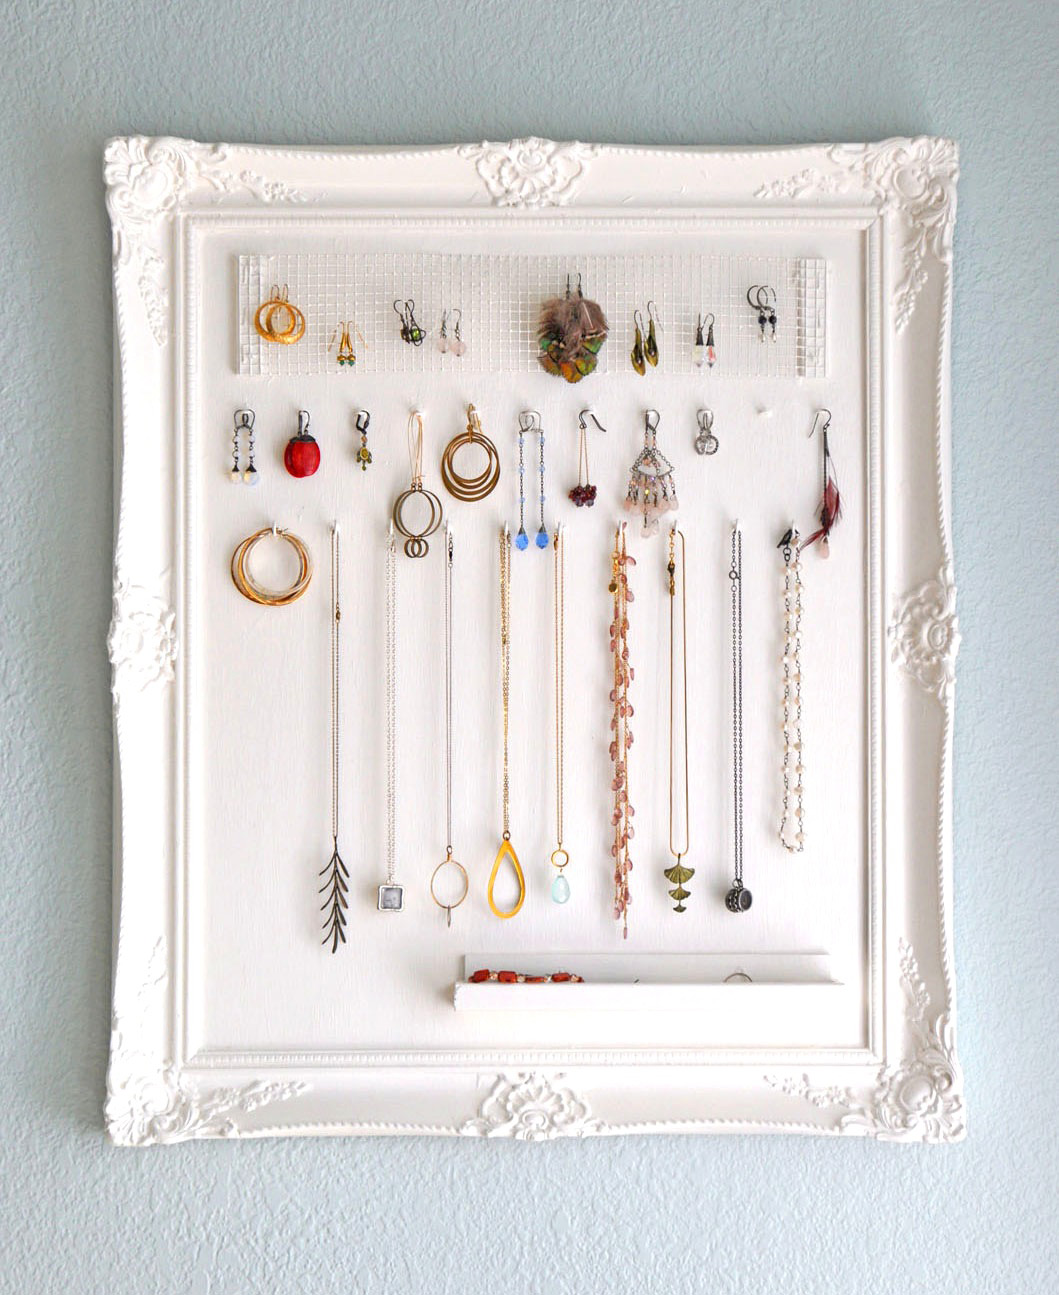 Vintage Pattern Wall Hanging Picture Frame Jewelry Holder